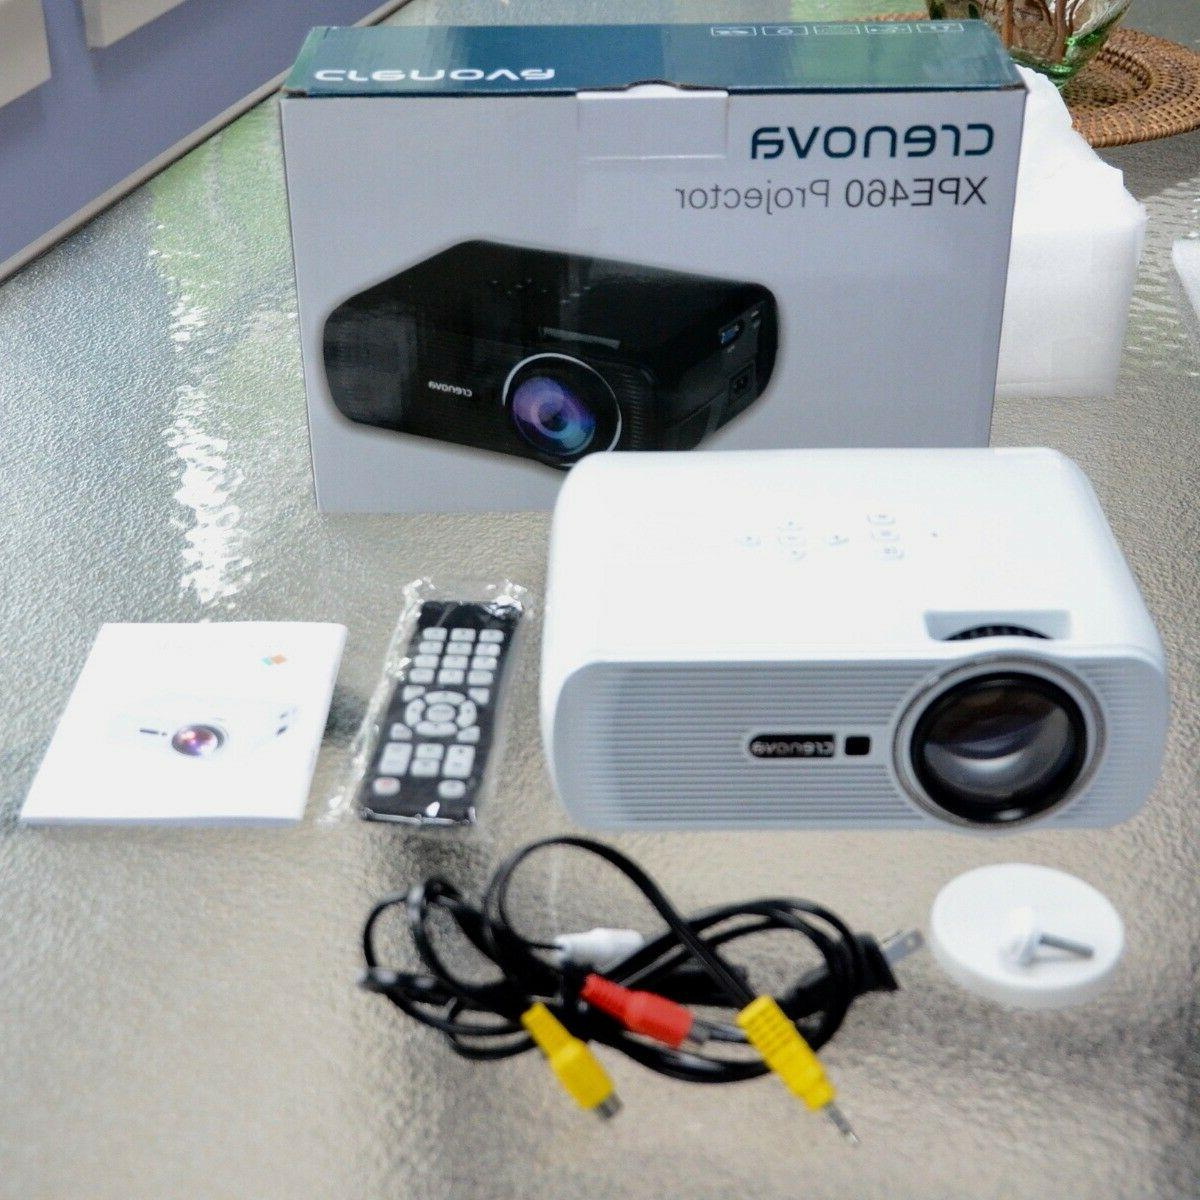 new xpe460 video projector full hd 1080p